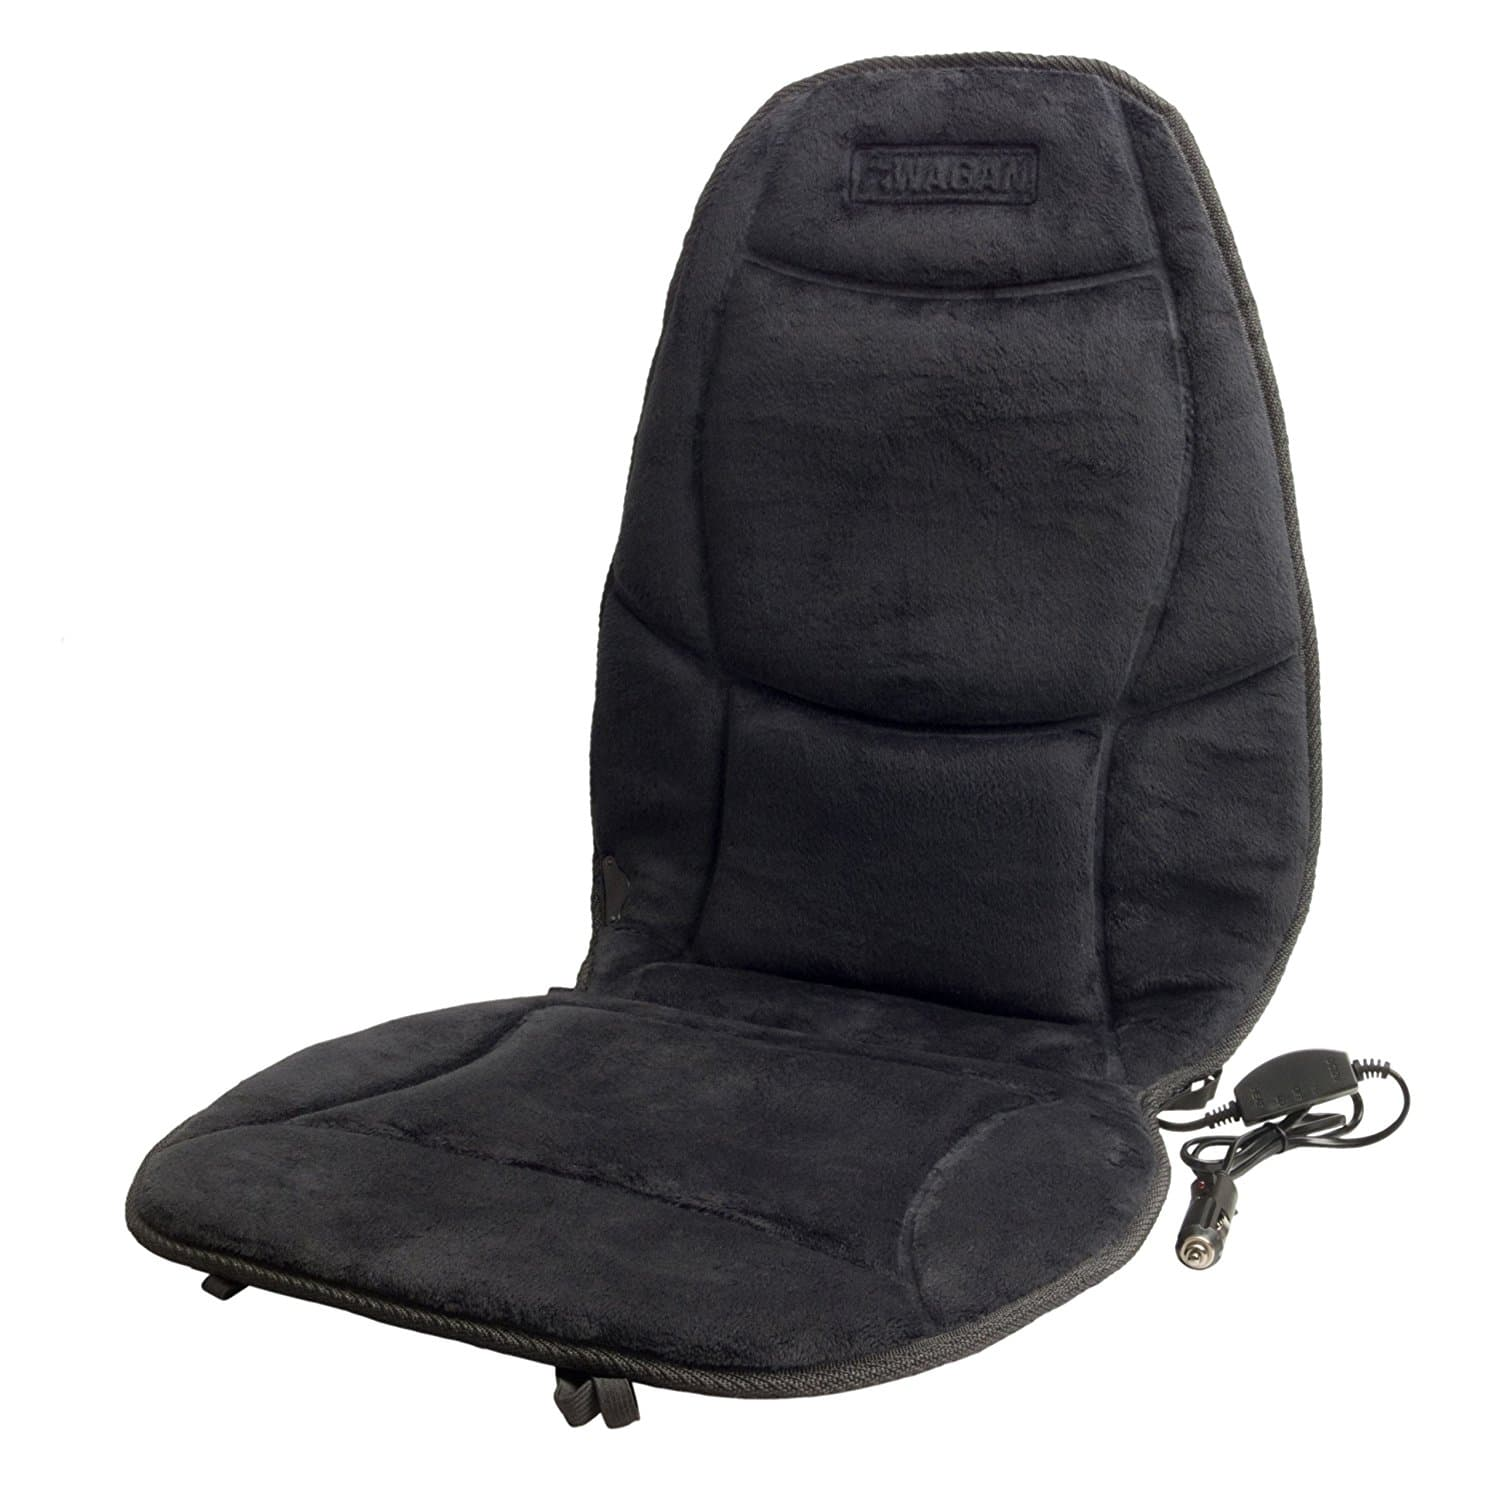 Heated Seat Covers - Wagan IN9438